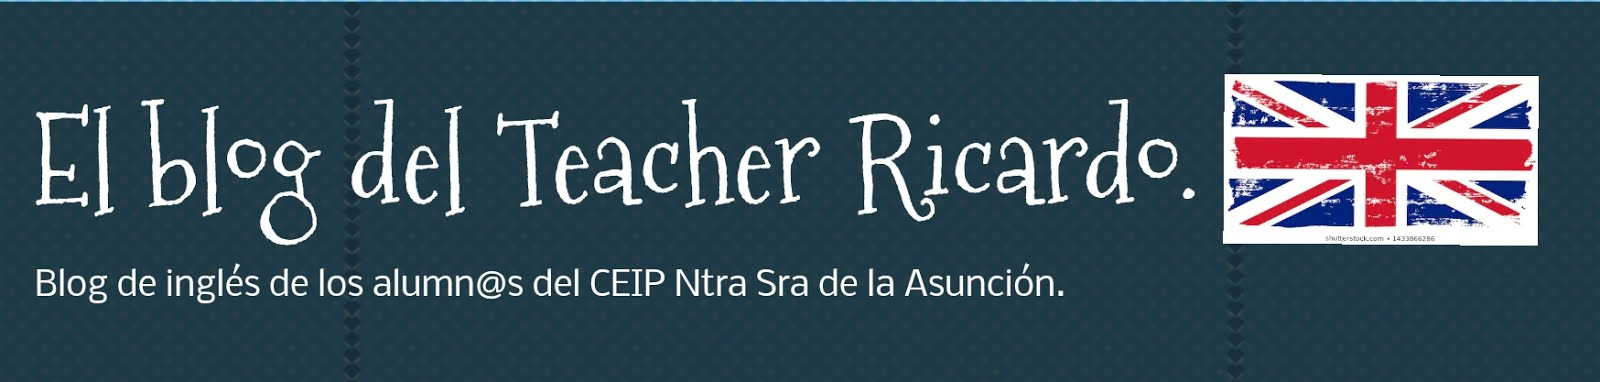 EL BLOG DEL TEACHER RICARDO